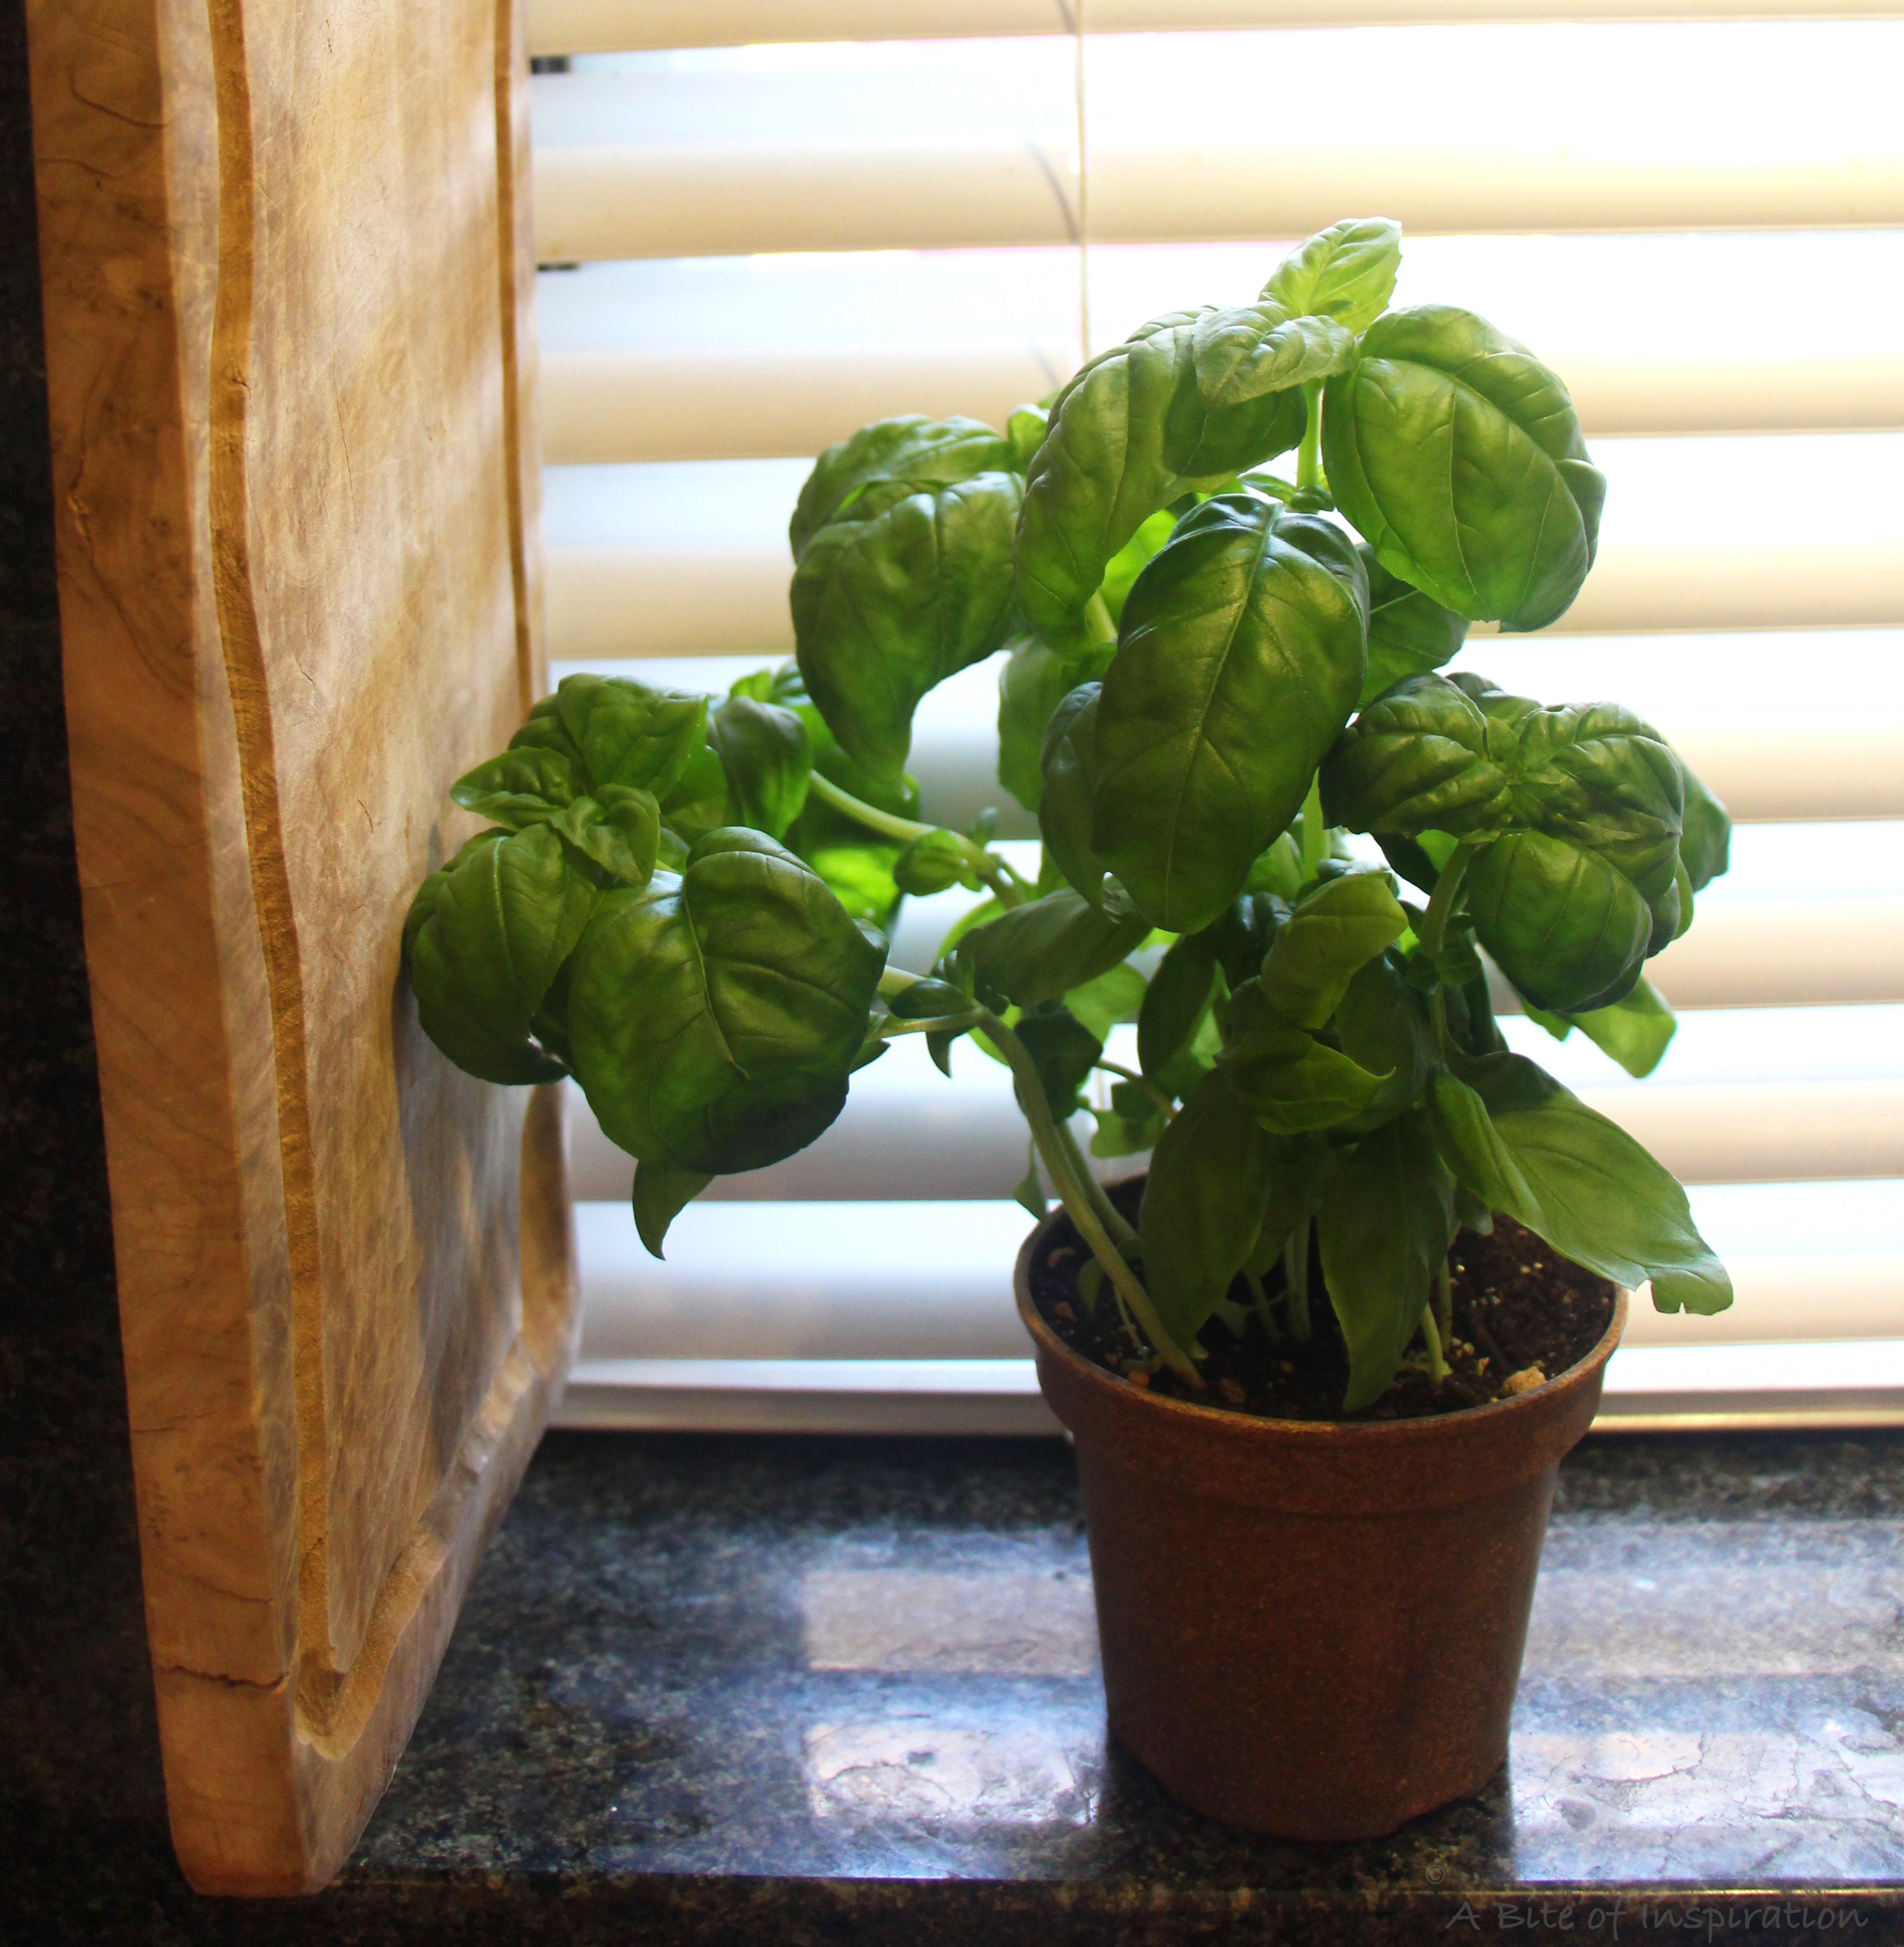 Basil plant growing on the windowsill with sunlight streamind behind it